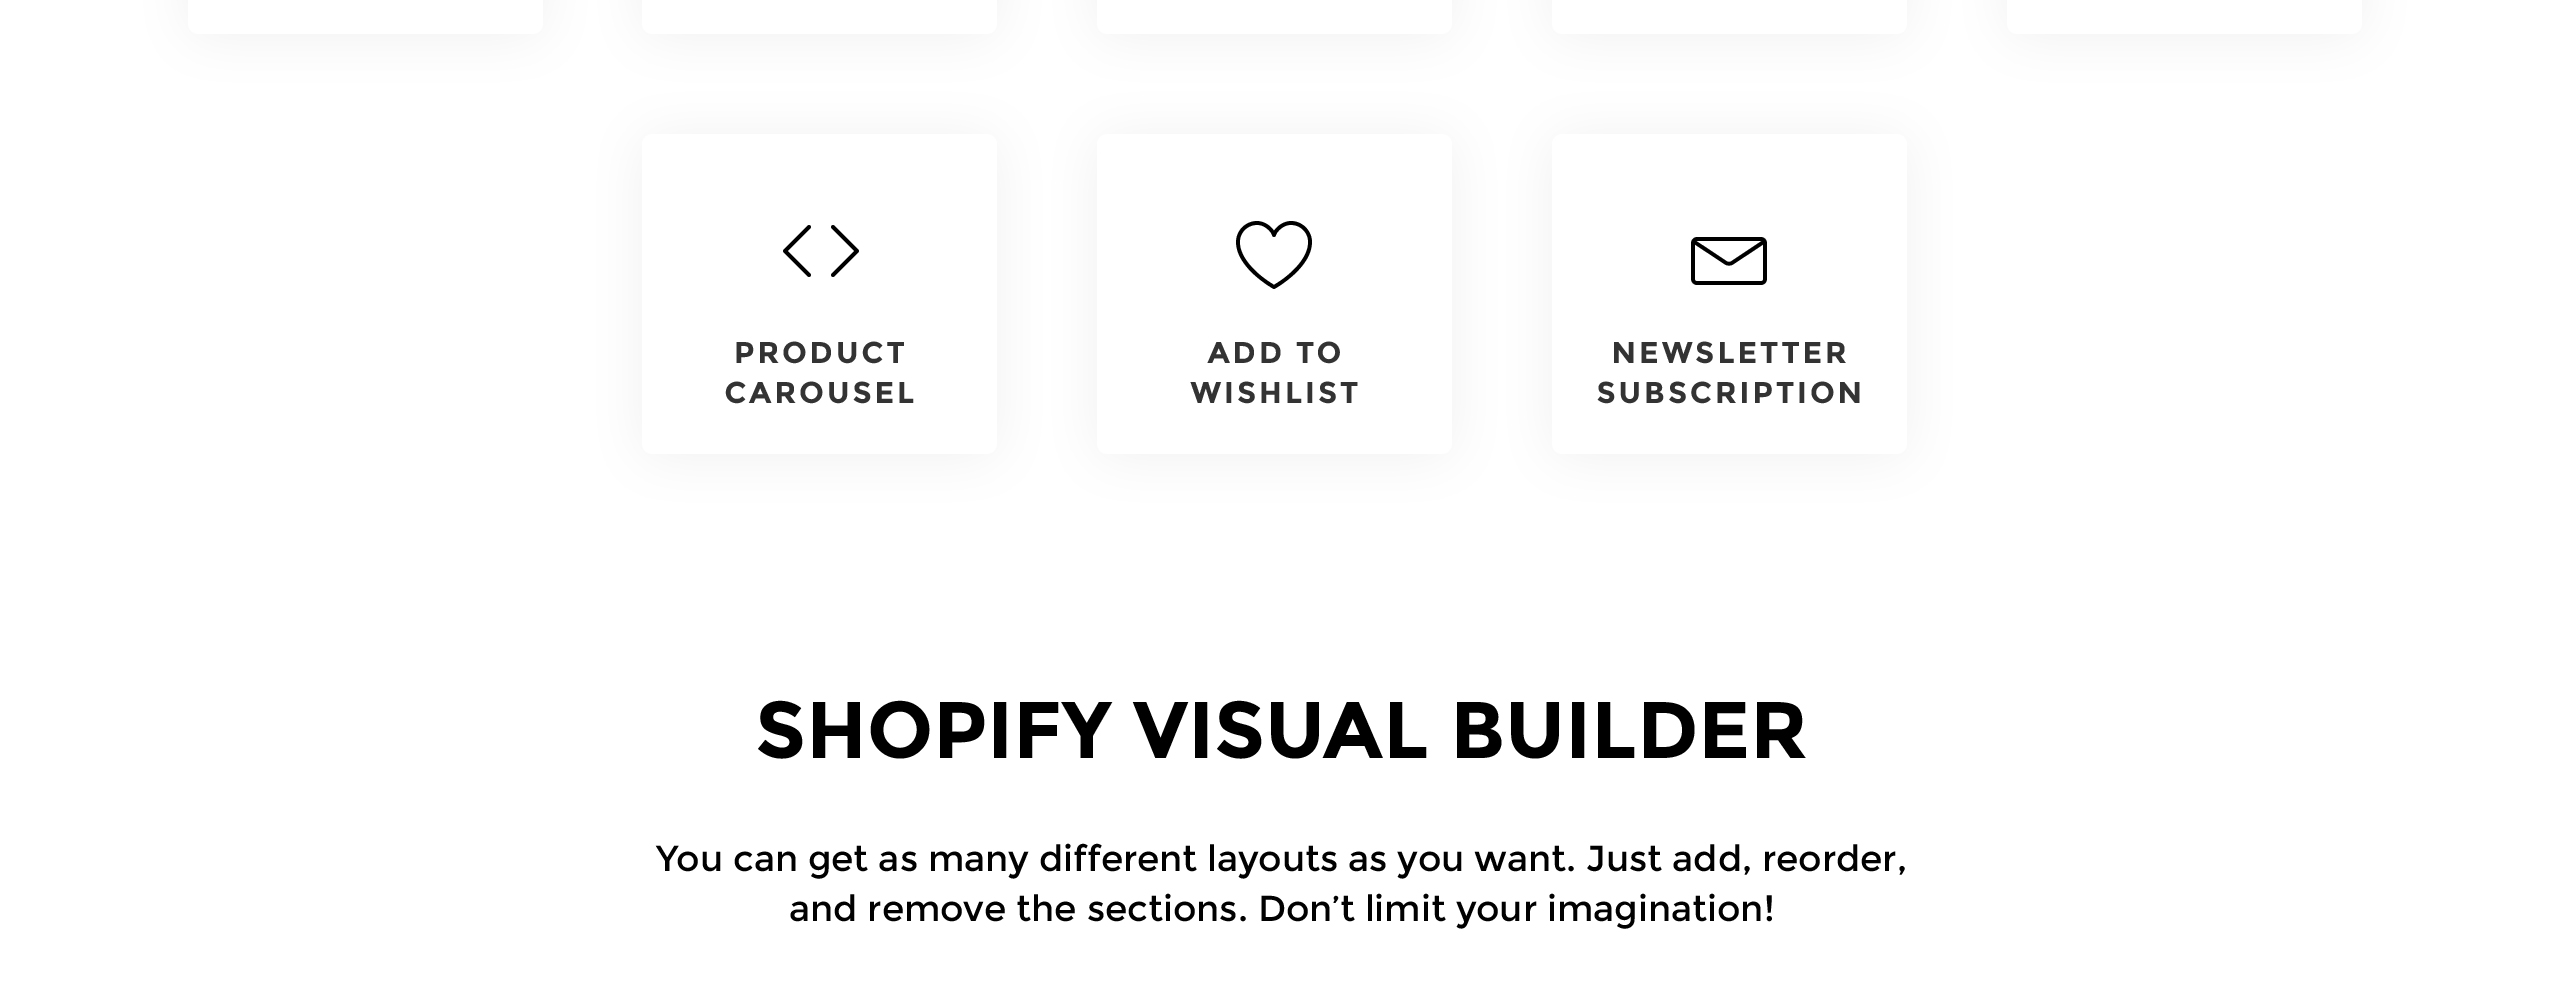 Website Design Template 73610 - shopify